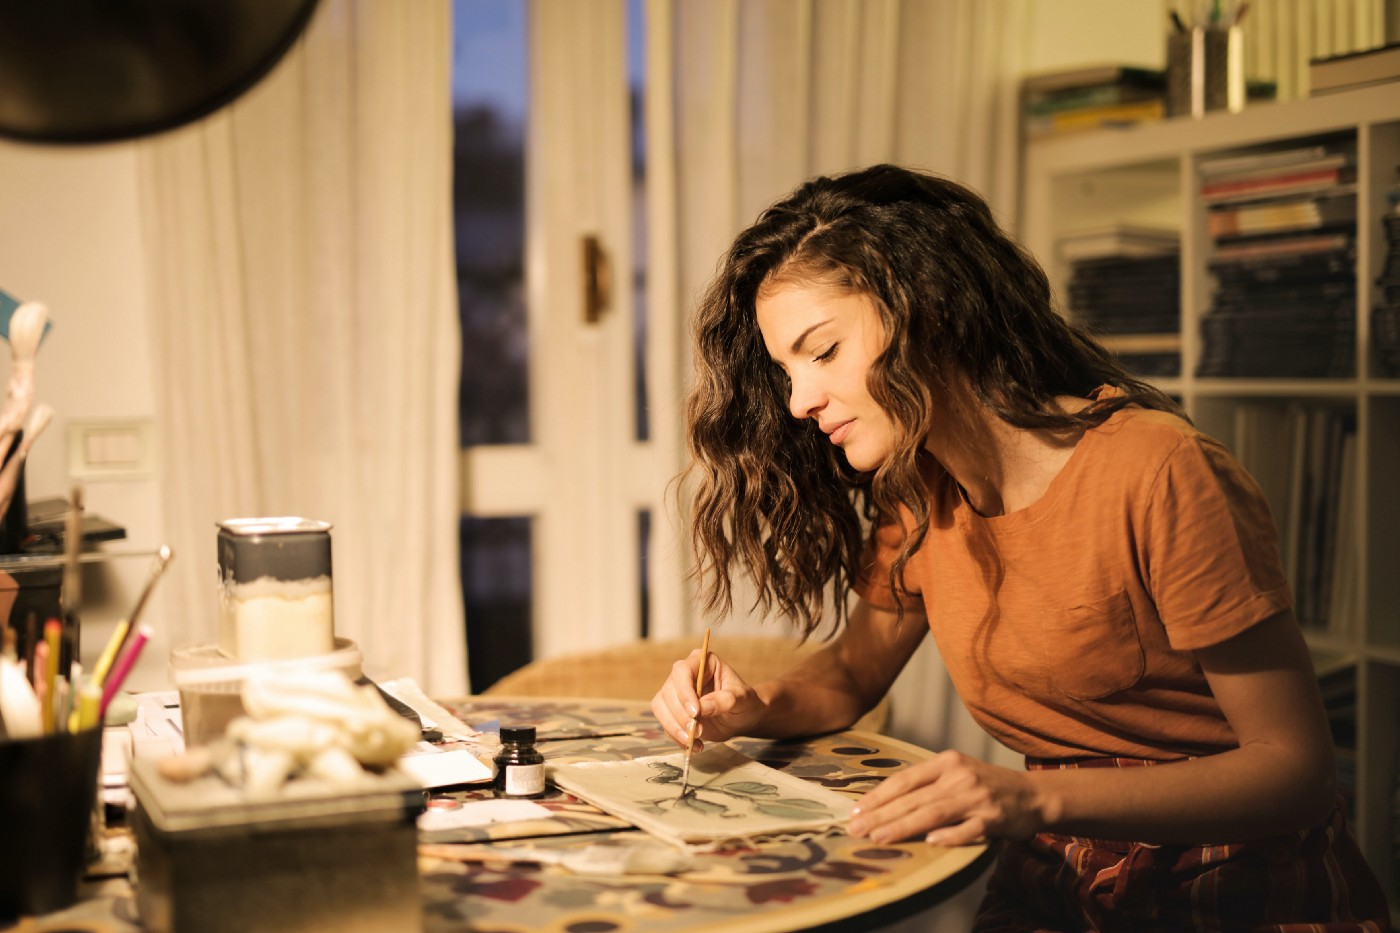 Woman is painting in an office space, likely in her apartment. The lighting is dim and homely.